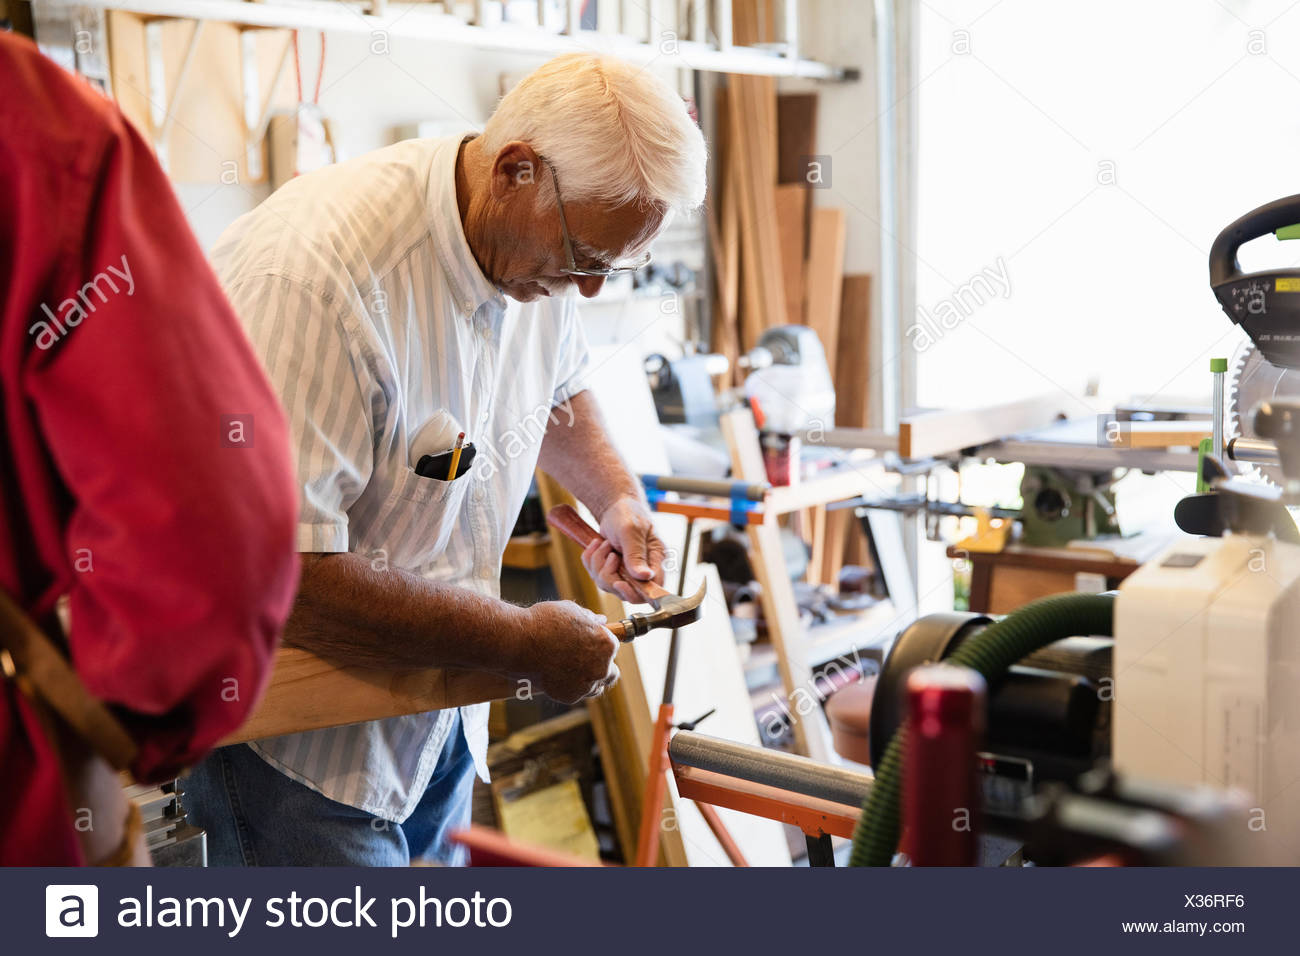 Senior man hammering woodblock in carpentry workshop - Stock Image